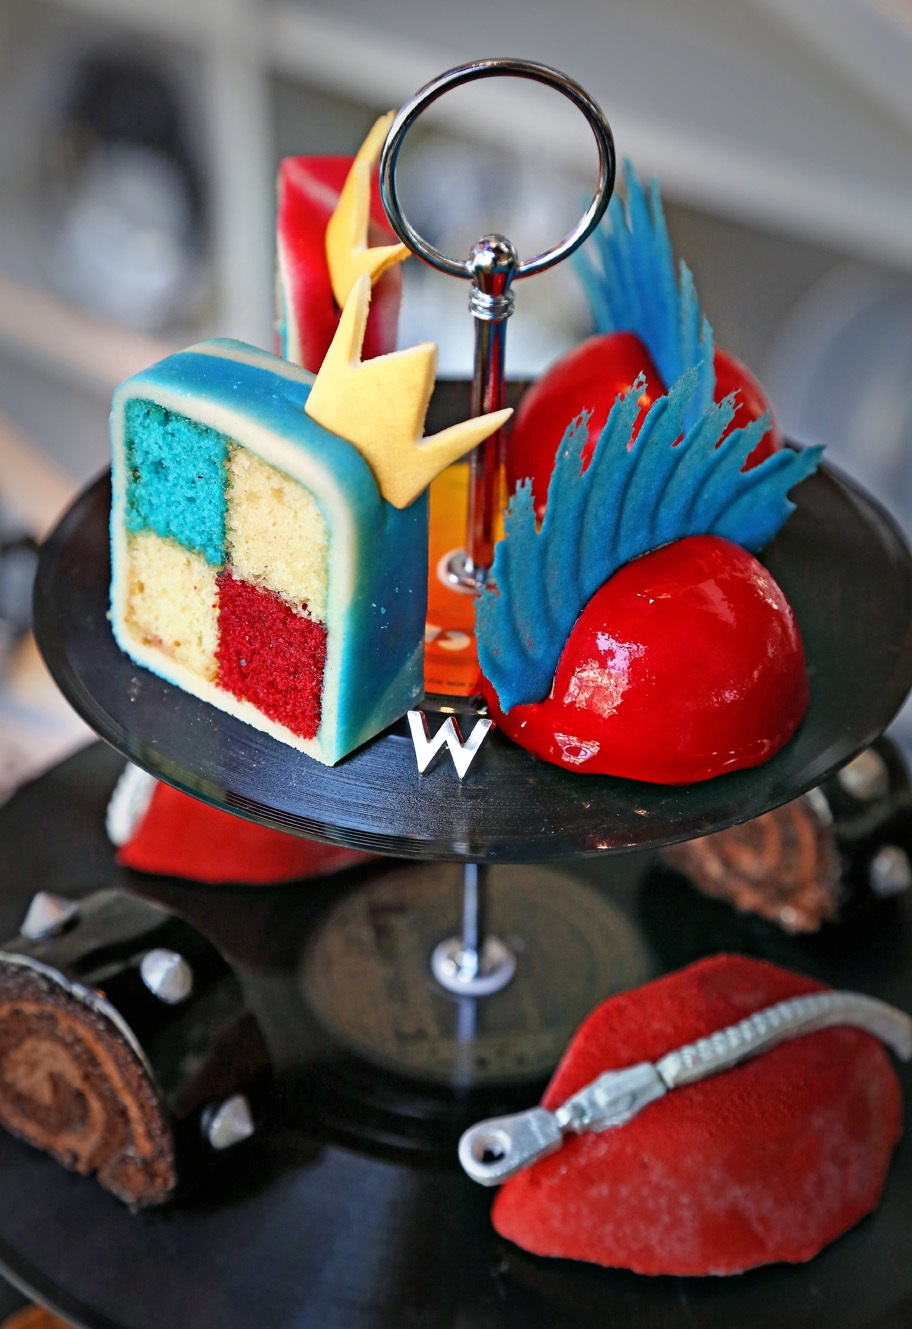 W Does Afternoon Tea - London